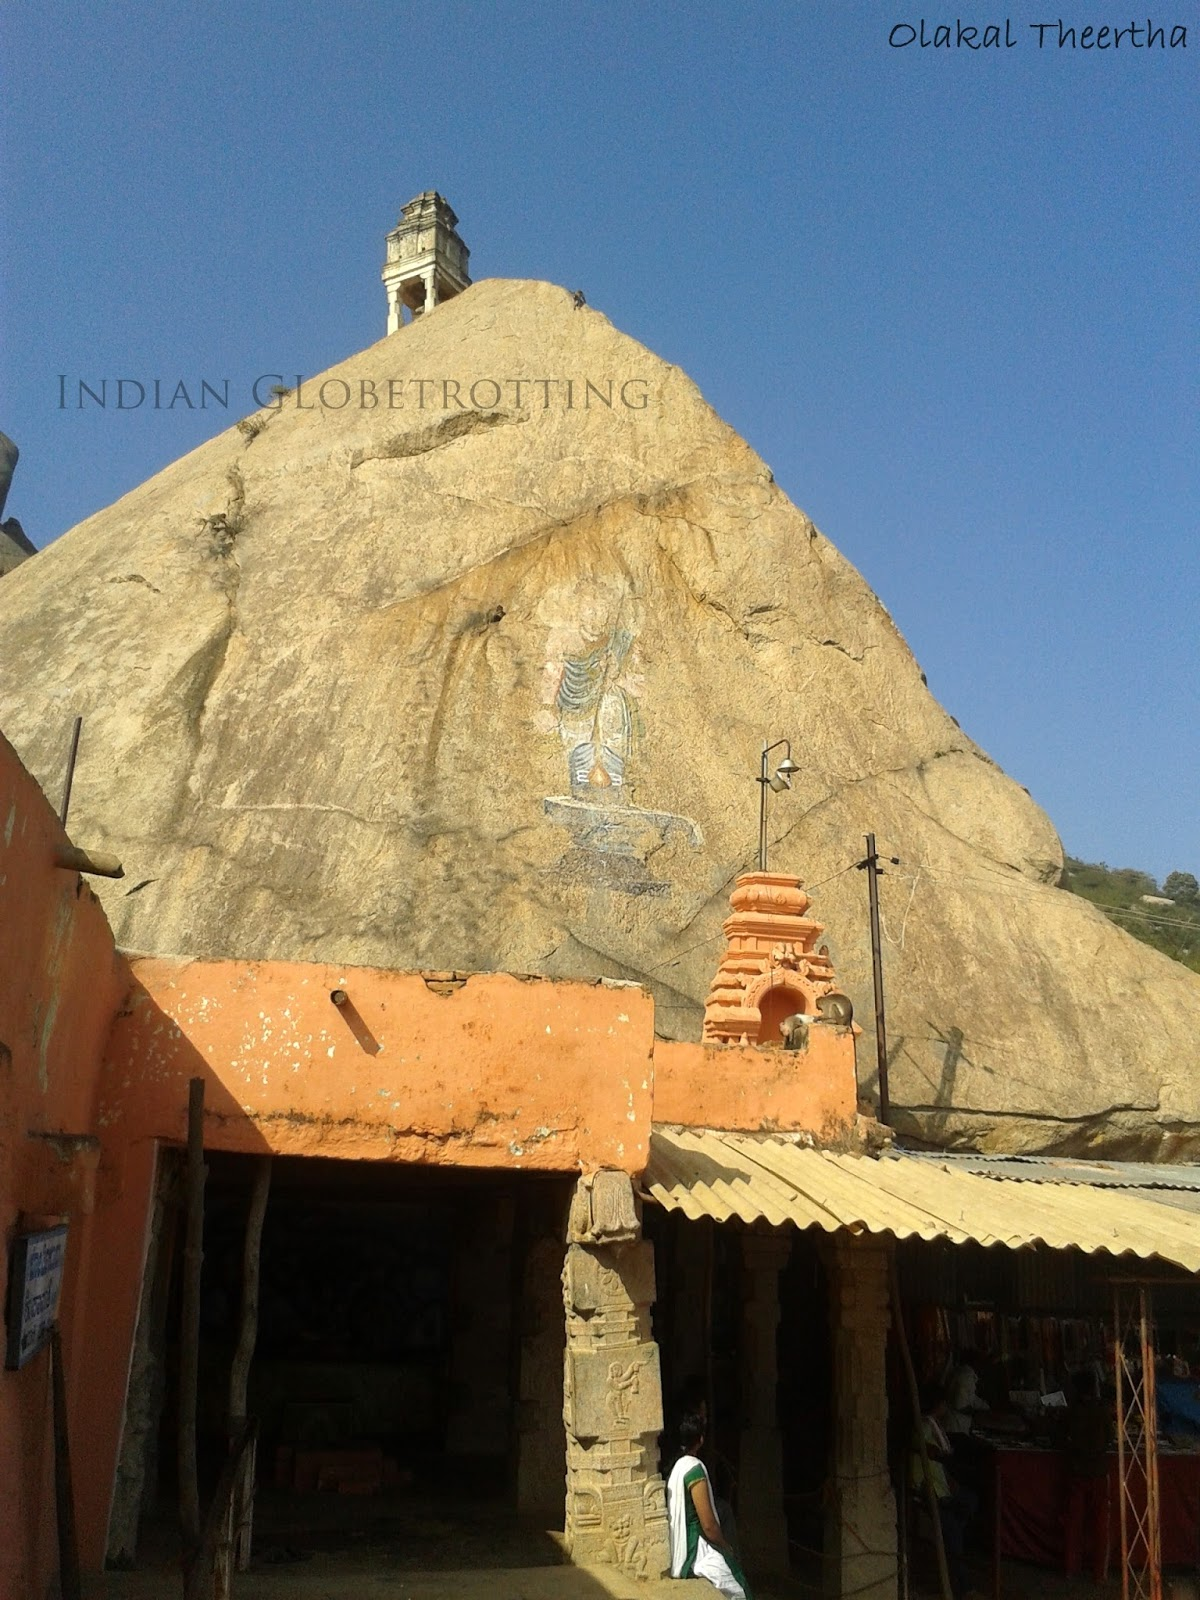 Olakal Theertha temple on the way to shivaganga betta